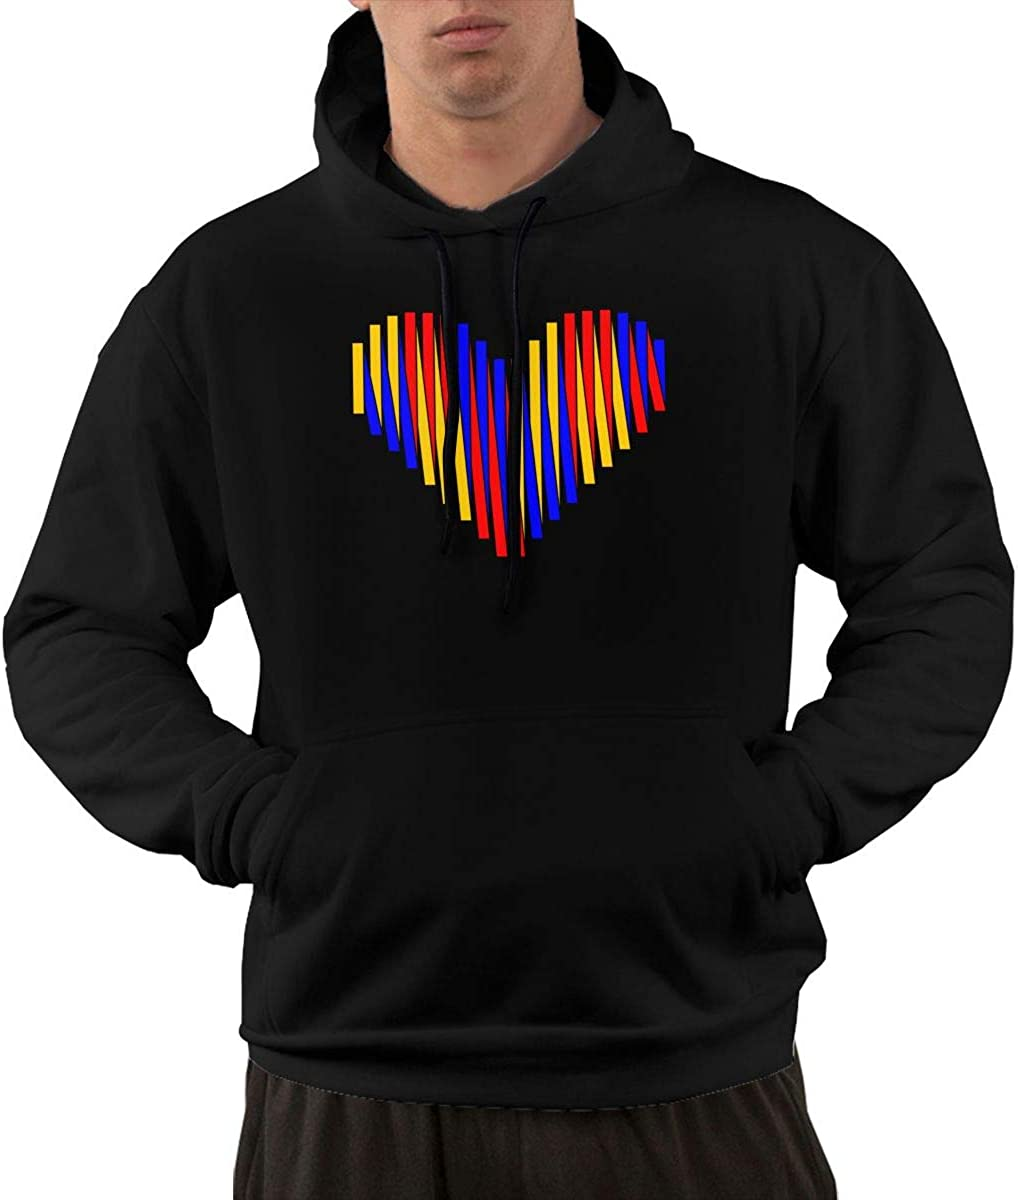 Mens Pullover Hoodie Outer Jacket with Pockets Venezuela Heart Love